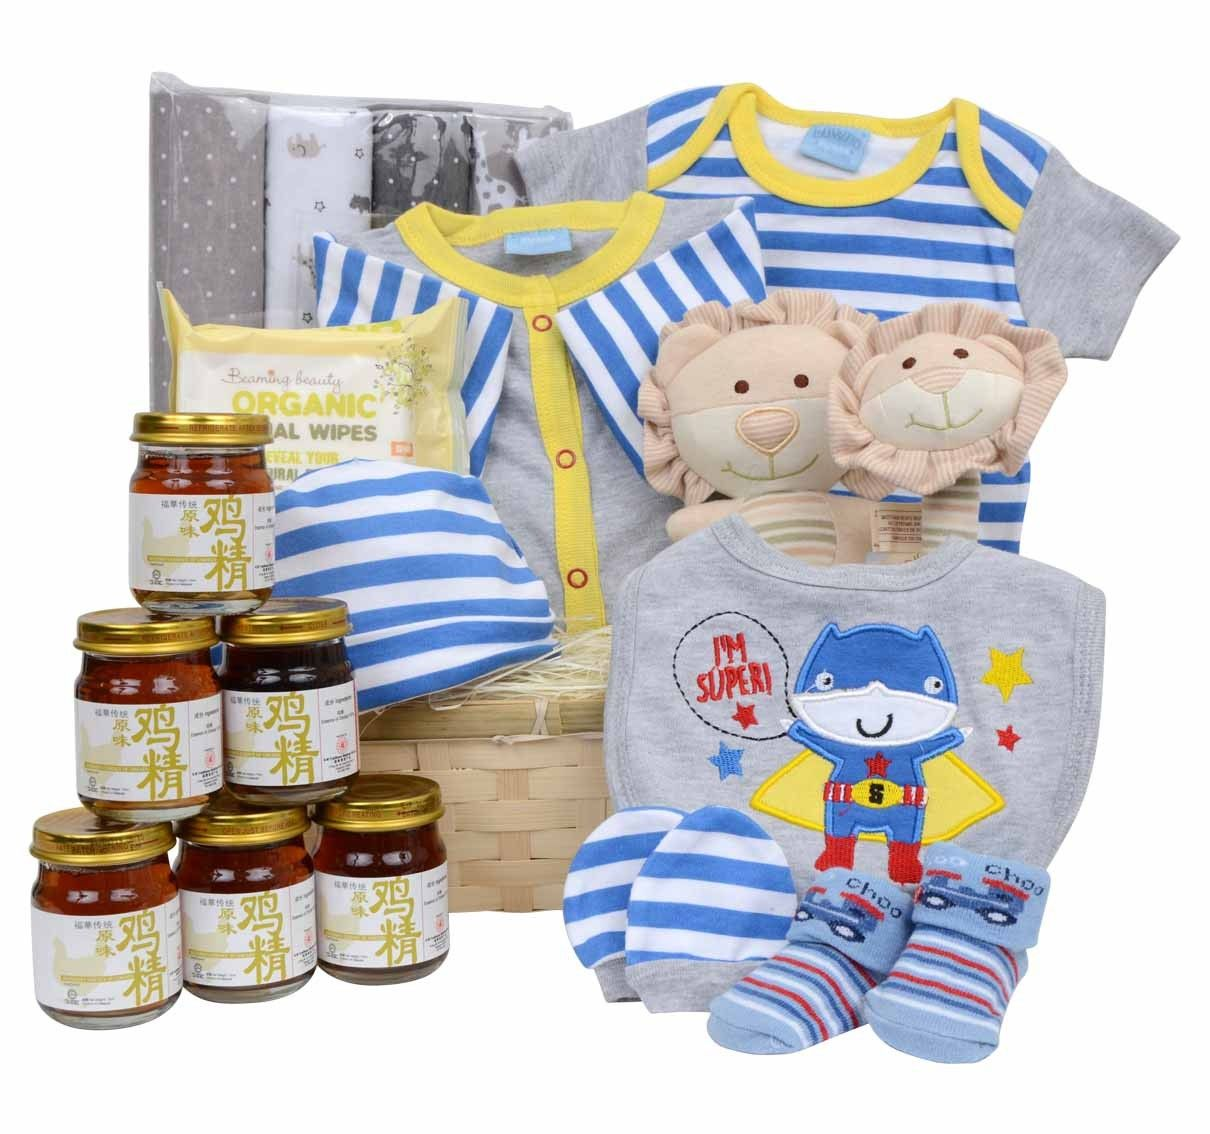 Bravo Set for Baby Boy (With images) Baby hamper, Baby